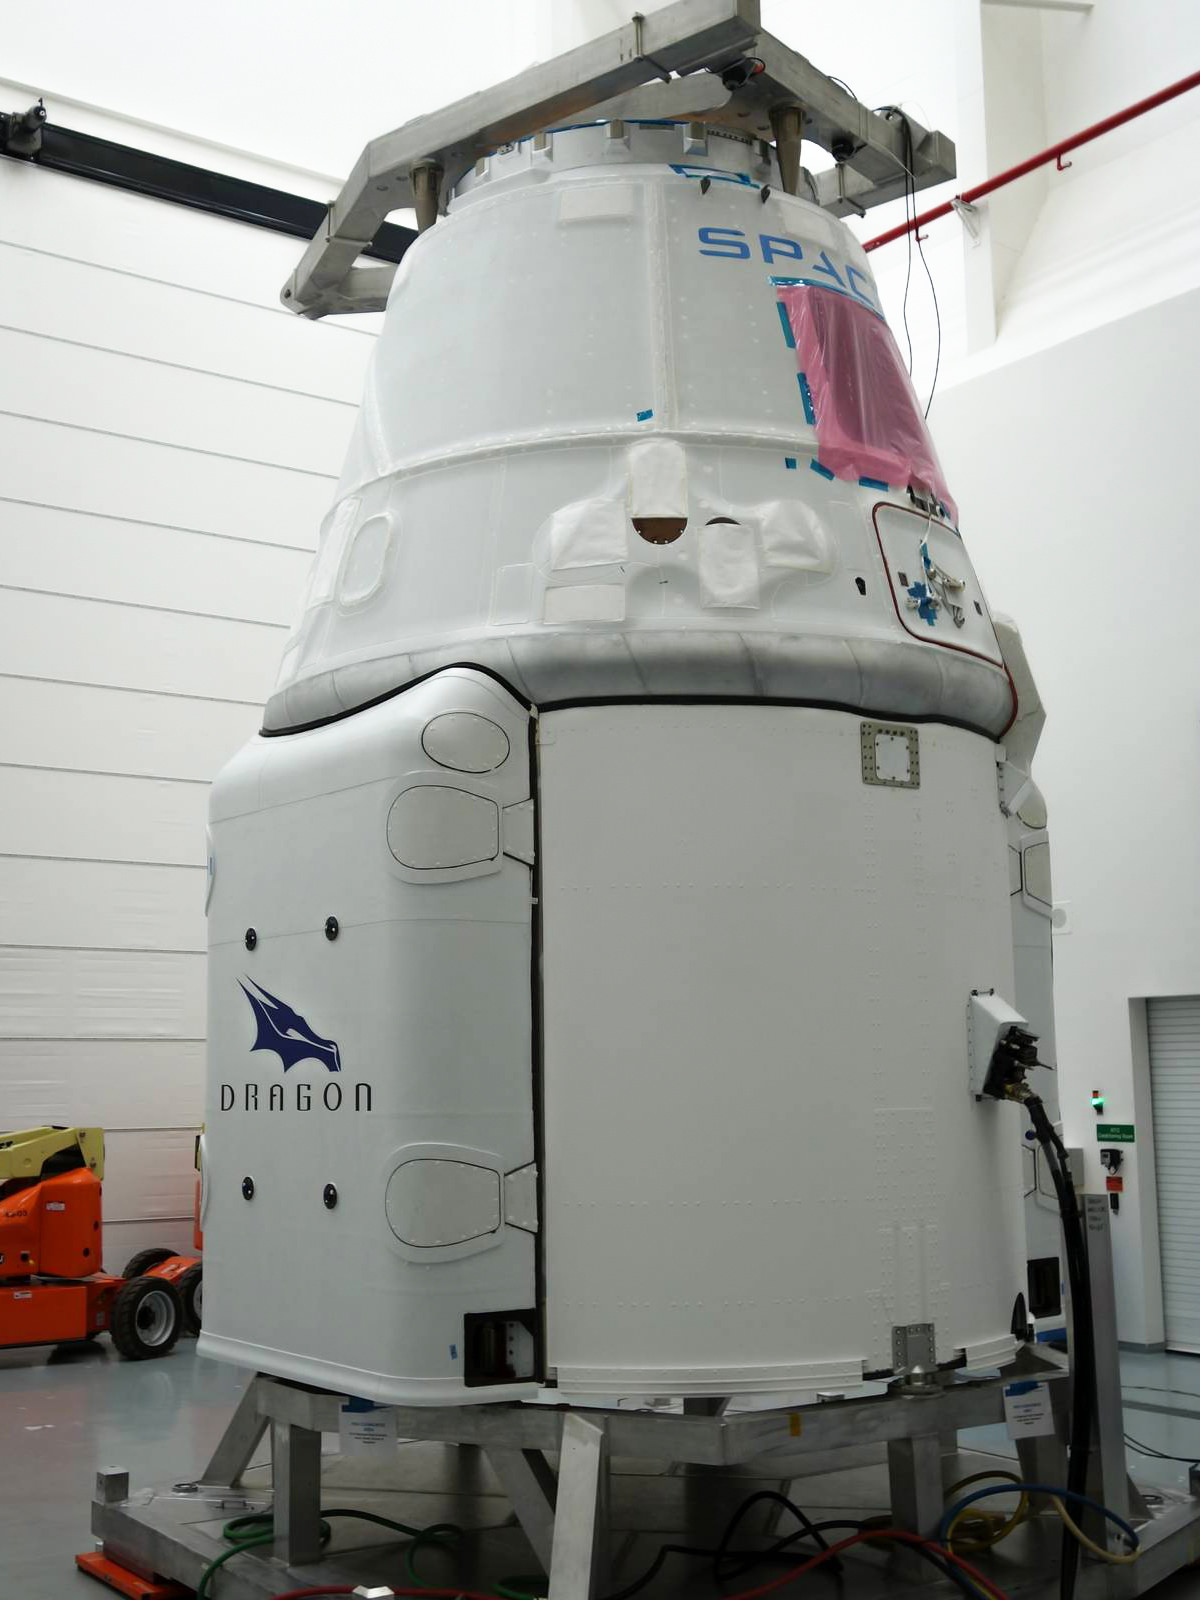 SpaceX's Dragon Capsule Ahead of Cargo Launch